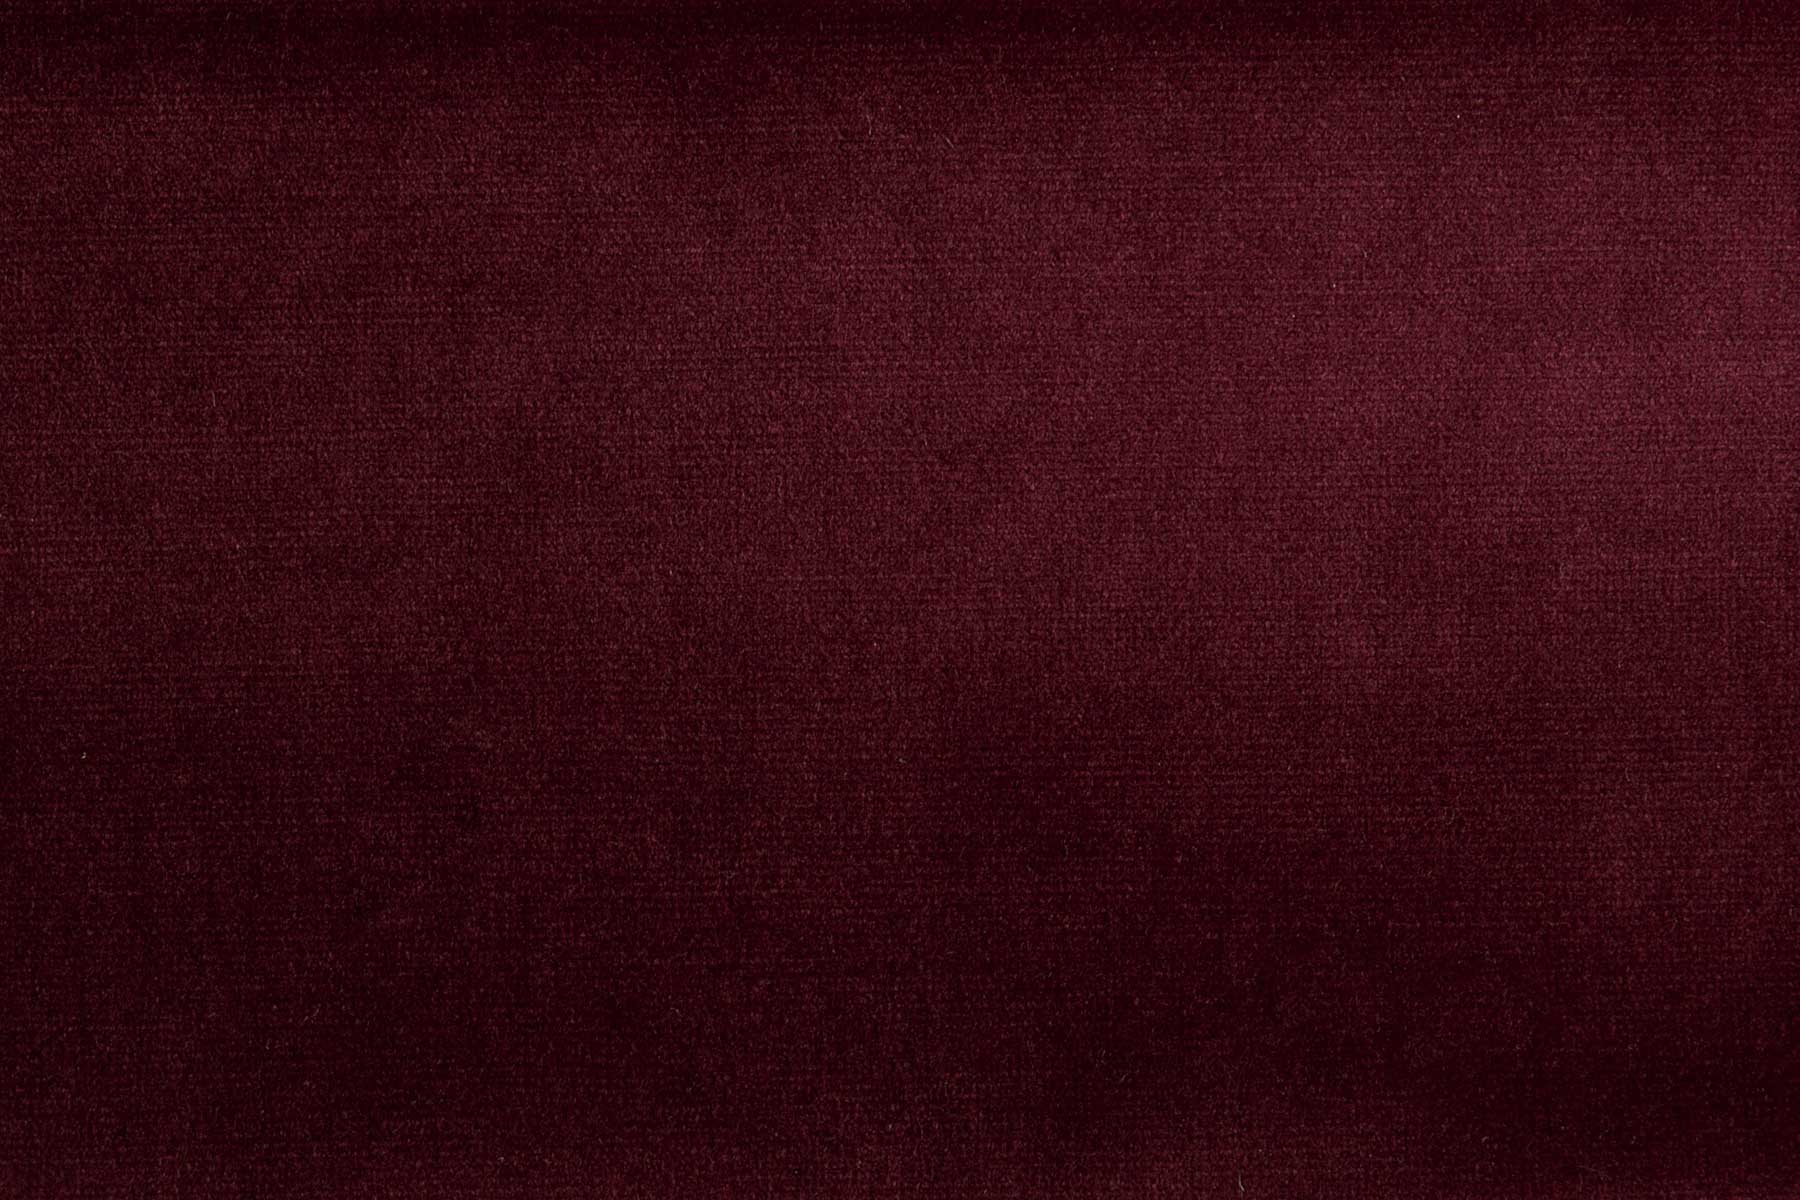 84a1b272e042 Fabric PARIS VELVET WINE by Koket